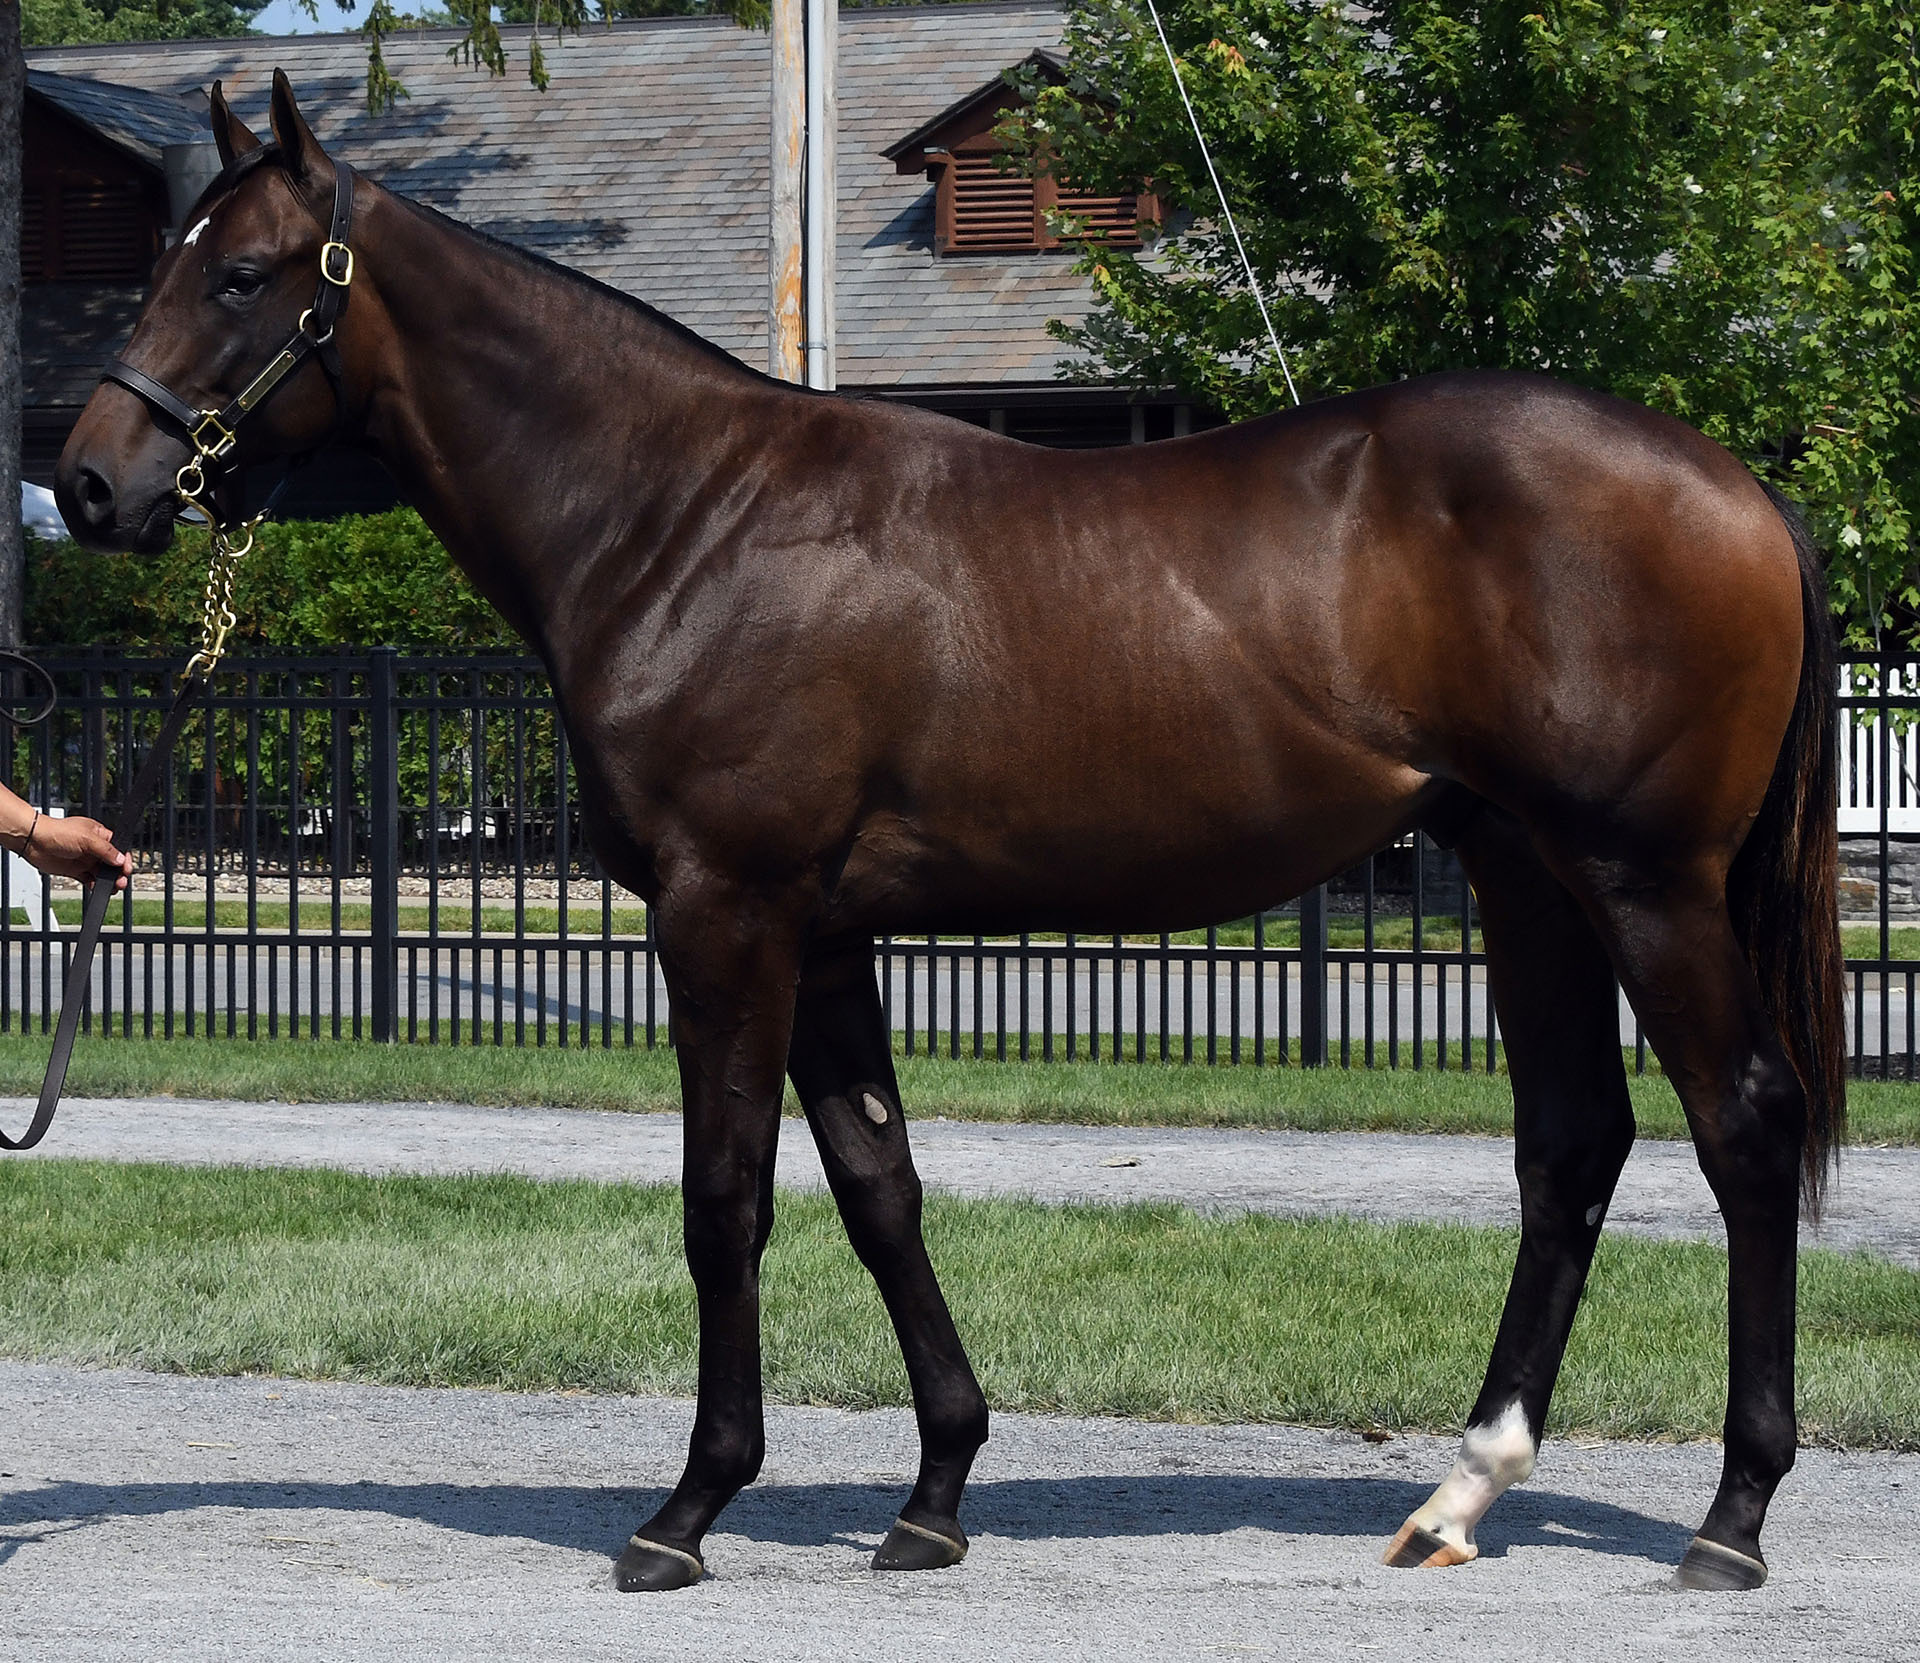 Candy Ride colt out of the Empire Maker mare Empire Desire, purchased at Fasig-Tipton Saratoga and available for a thoroughbred racing partnership.